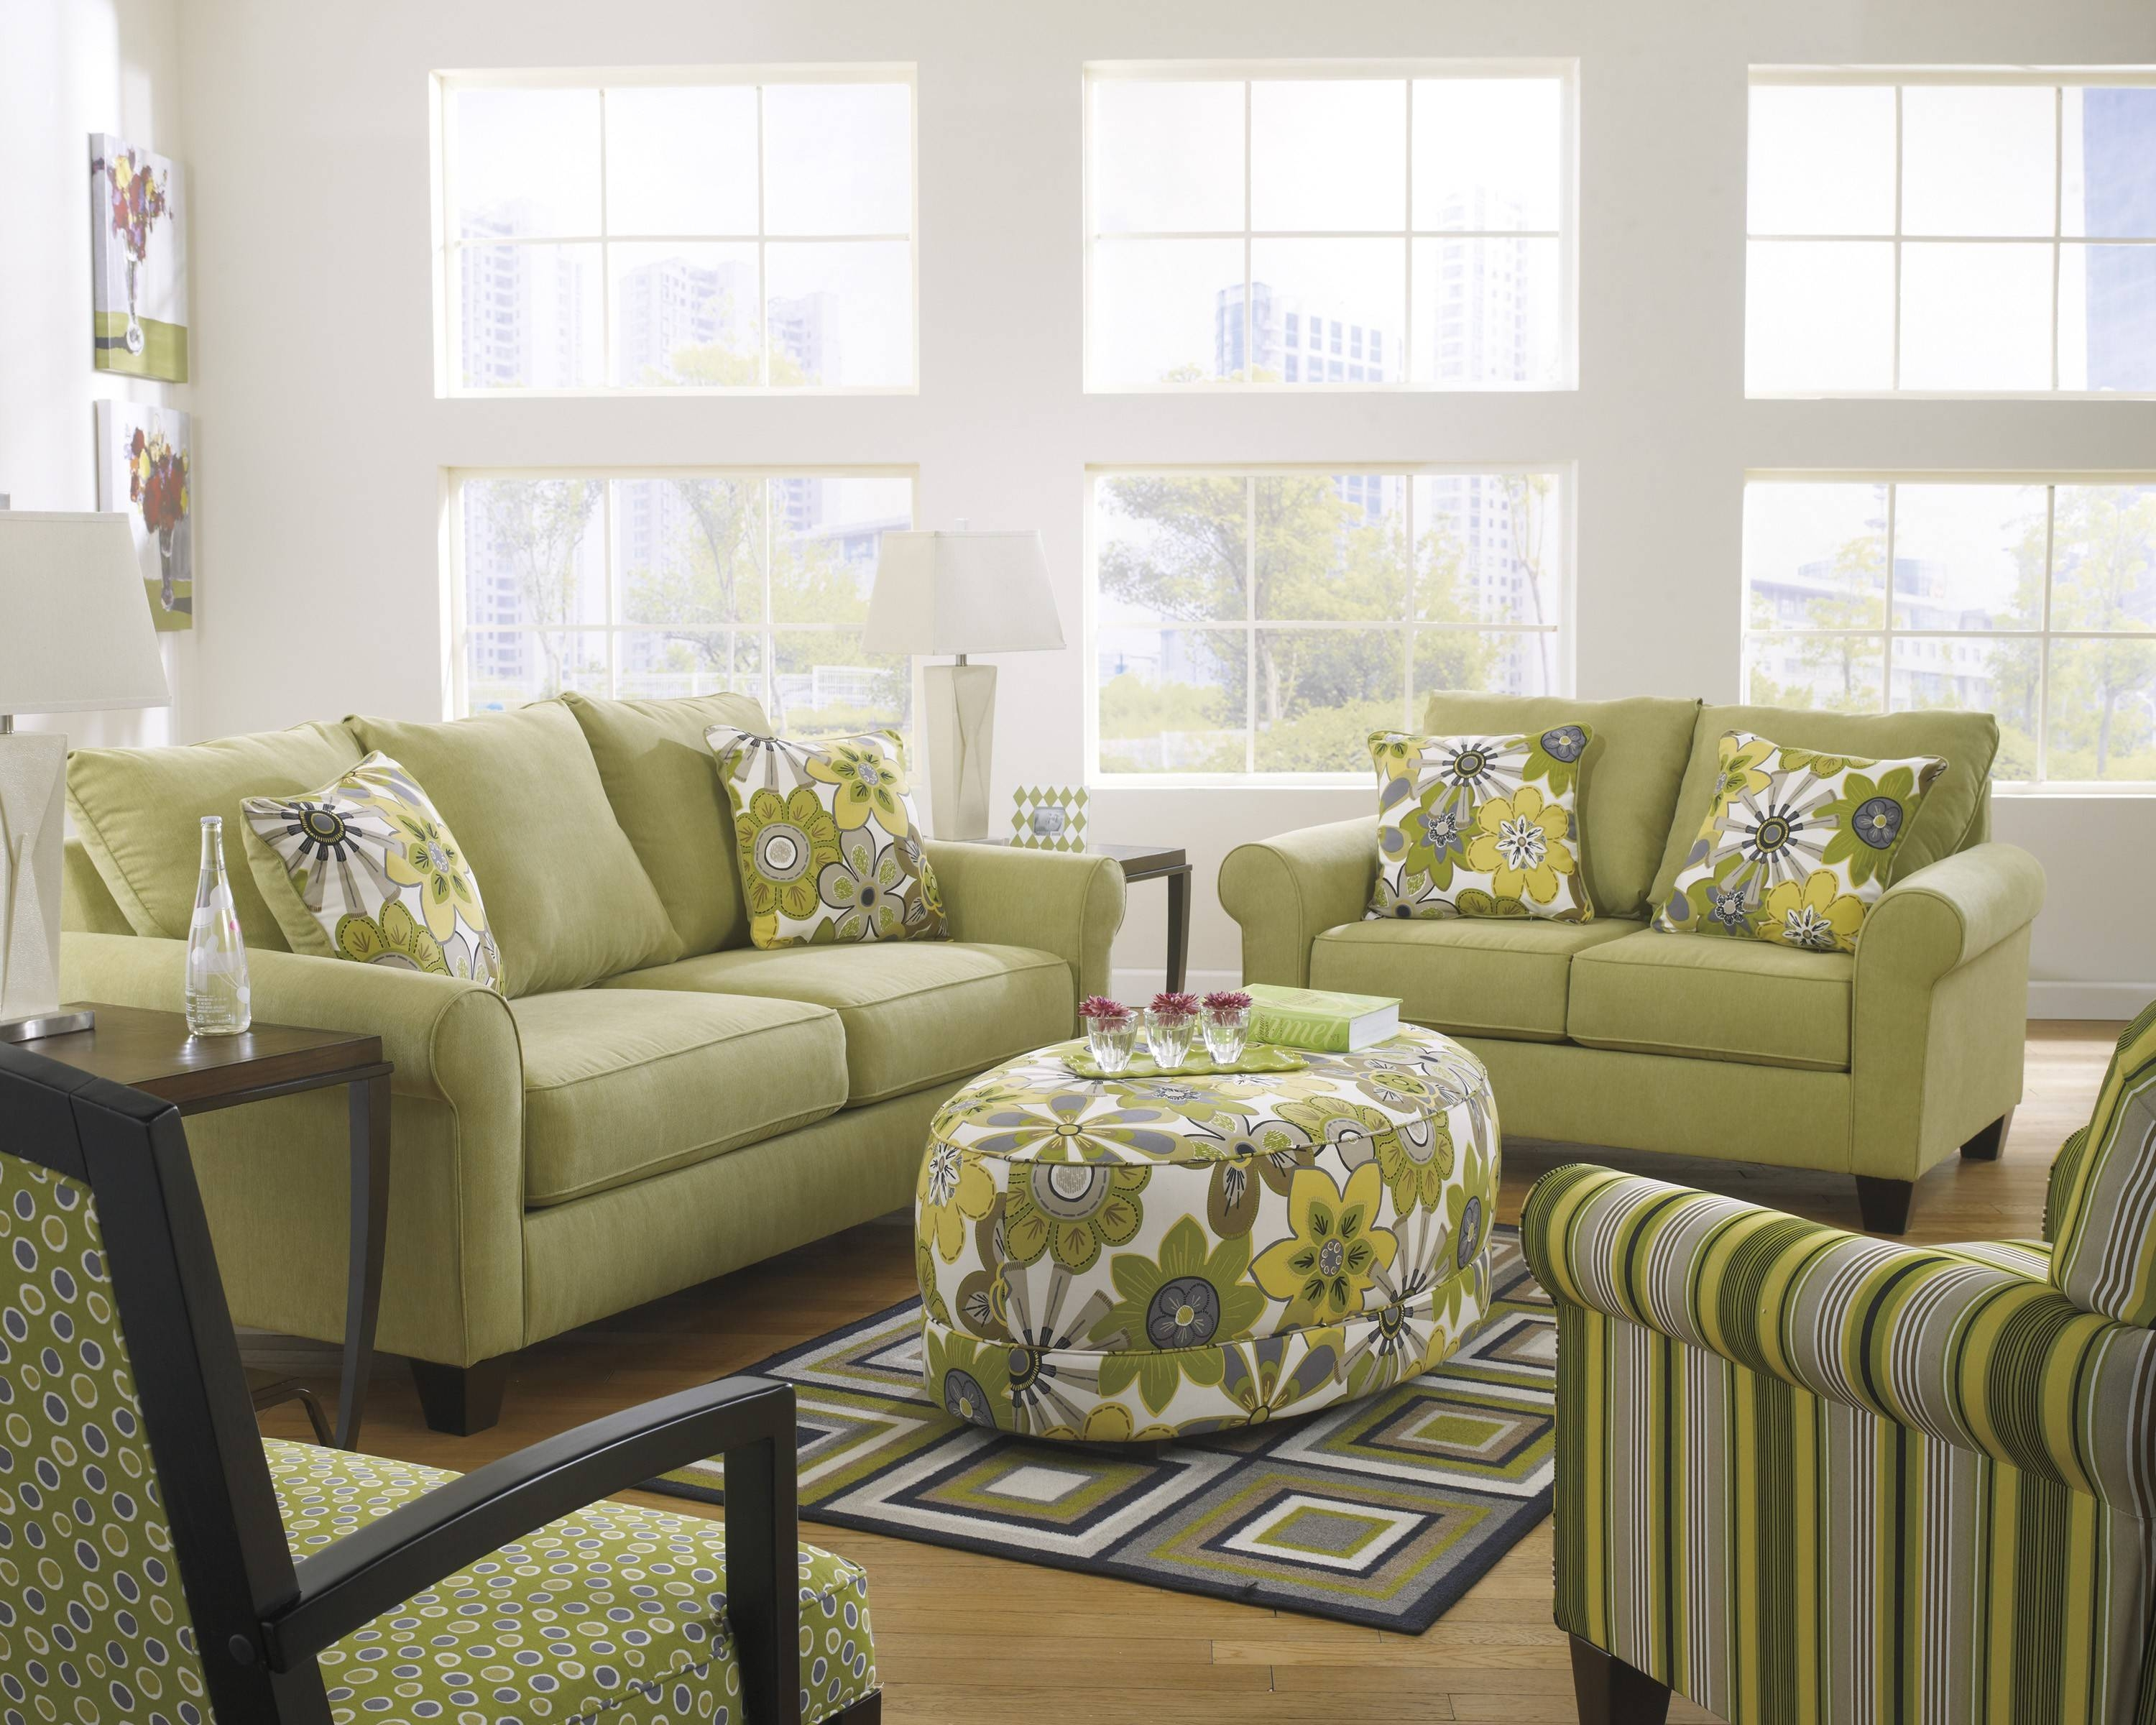 Furniture: Nice Oversized Ottoman For Living Room Furniture Idea with regard to Green Ottoman Coffee Tables (Image 13 of 30)